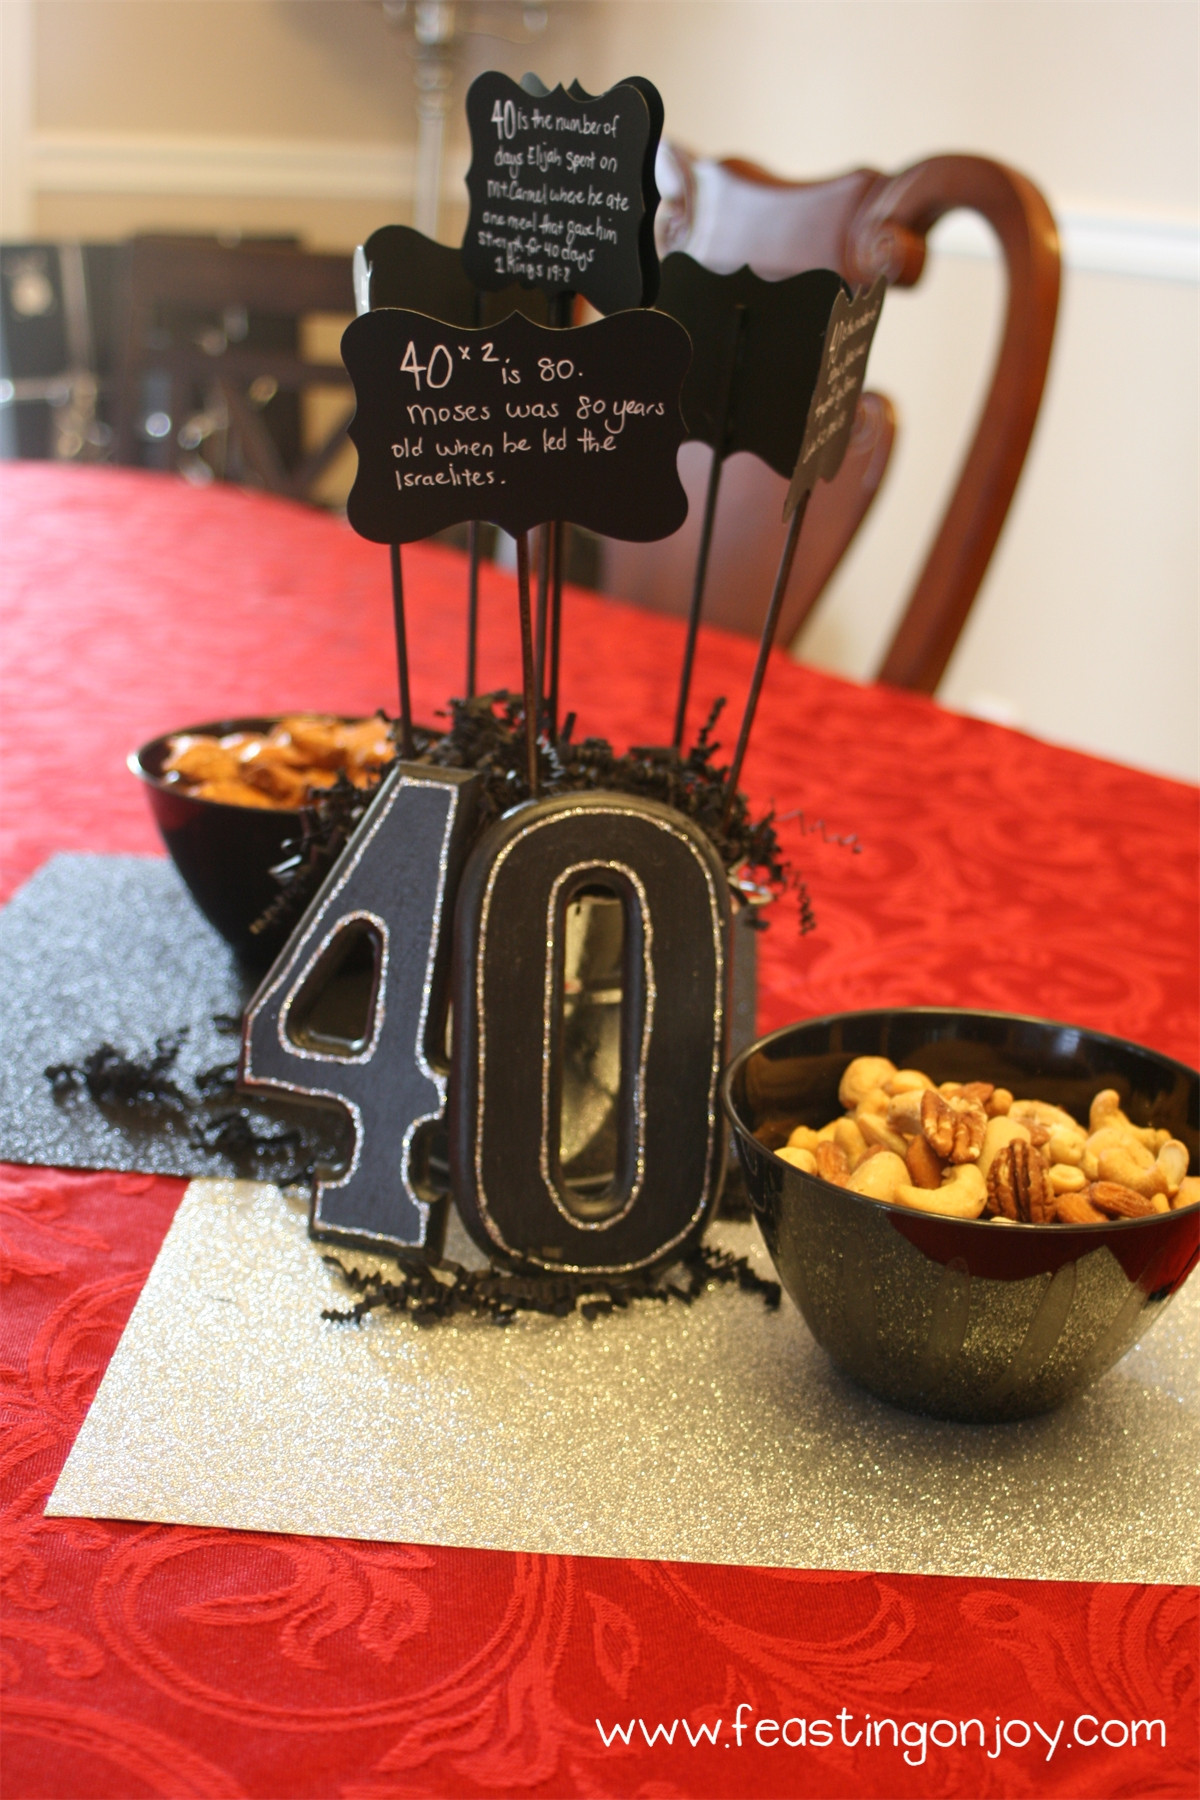 Best ideas about 40th Birthday Party Ideas . Save or Pin A Christian themed manly surprise 40th birthday party Now.